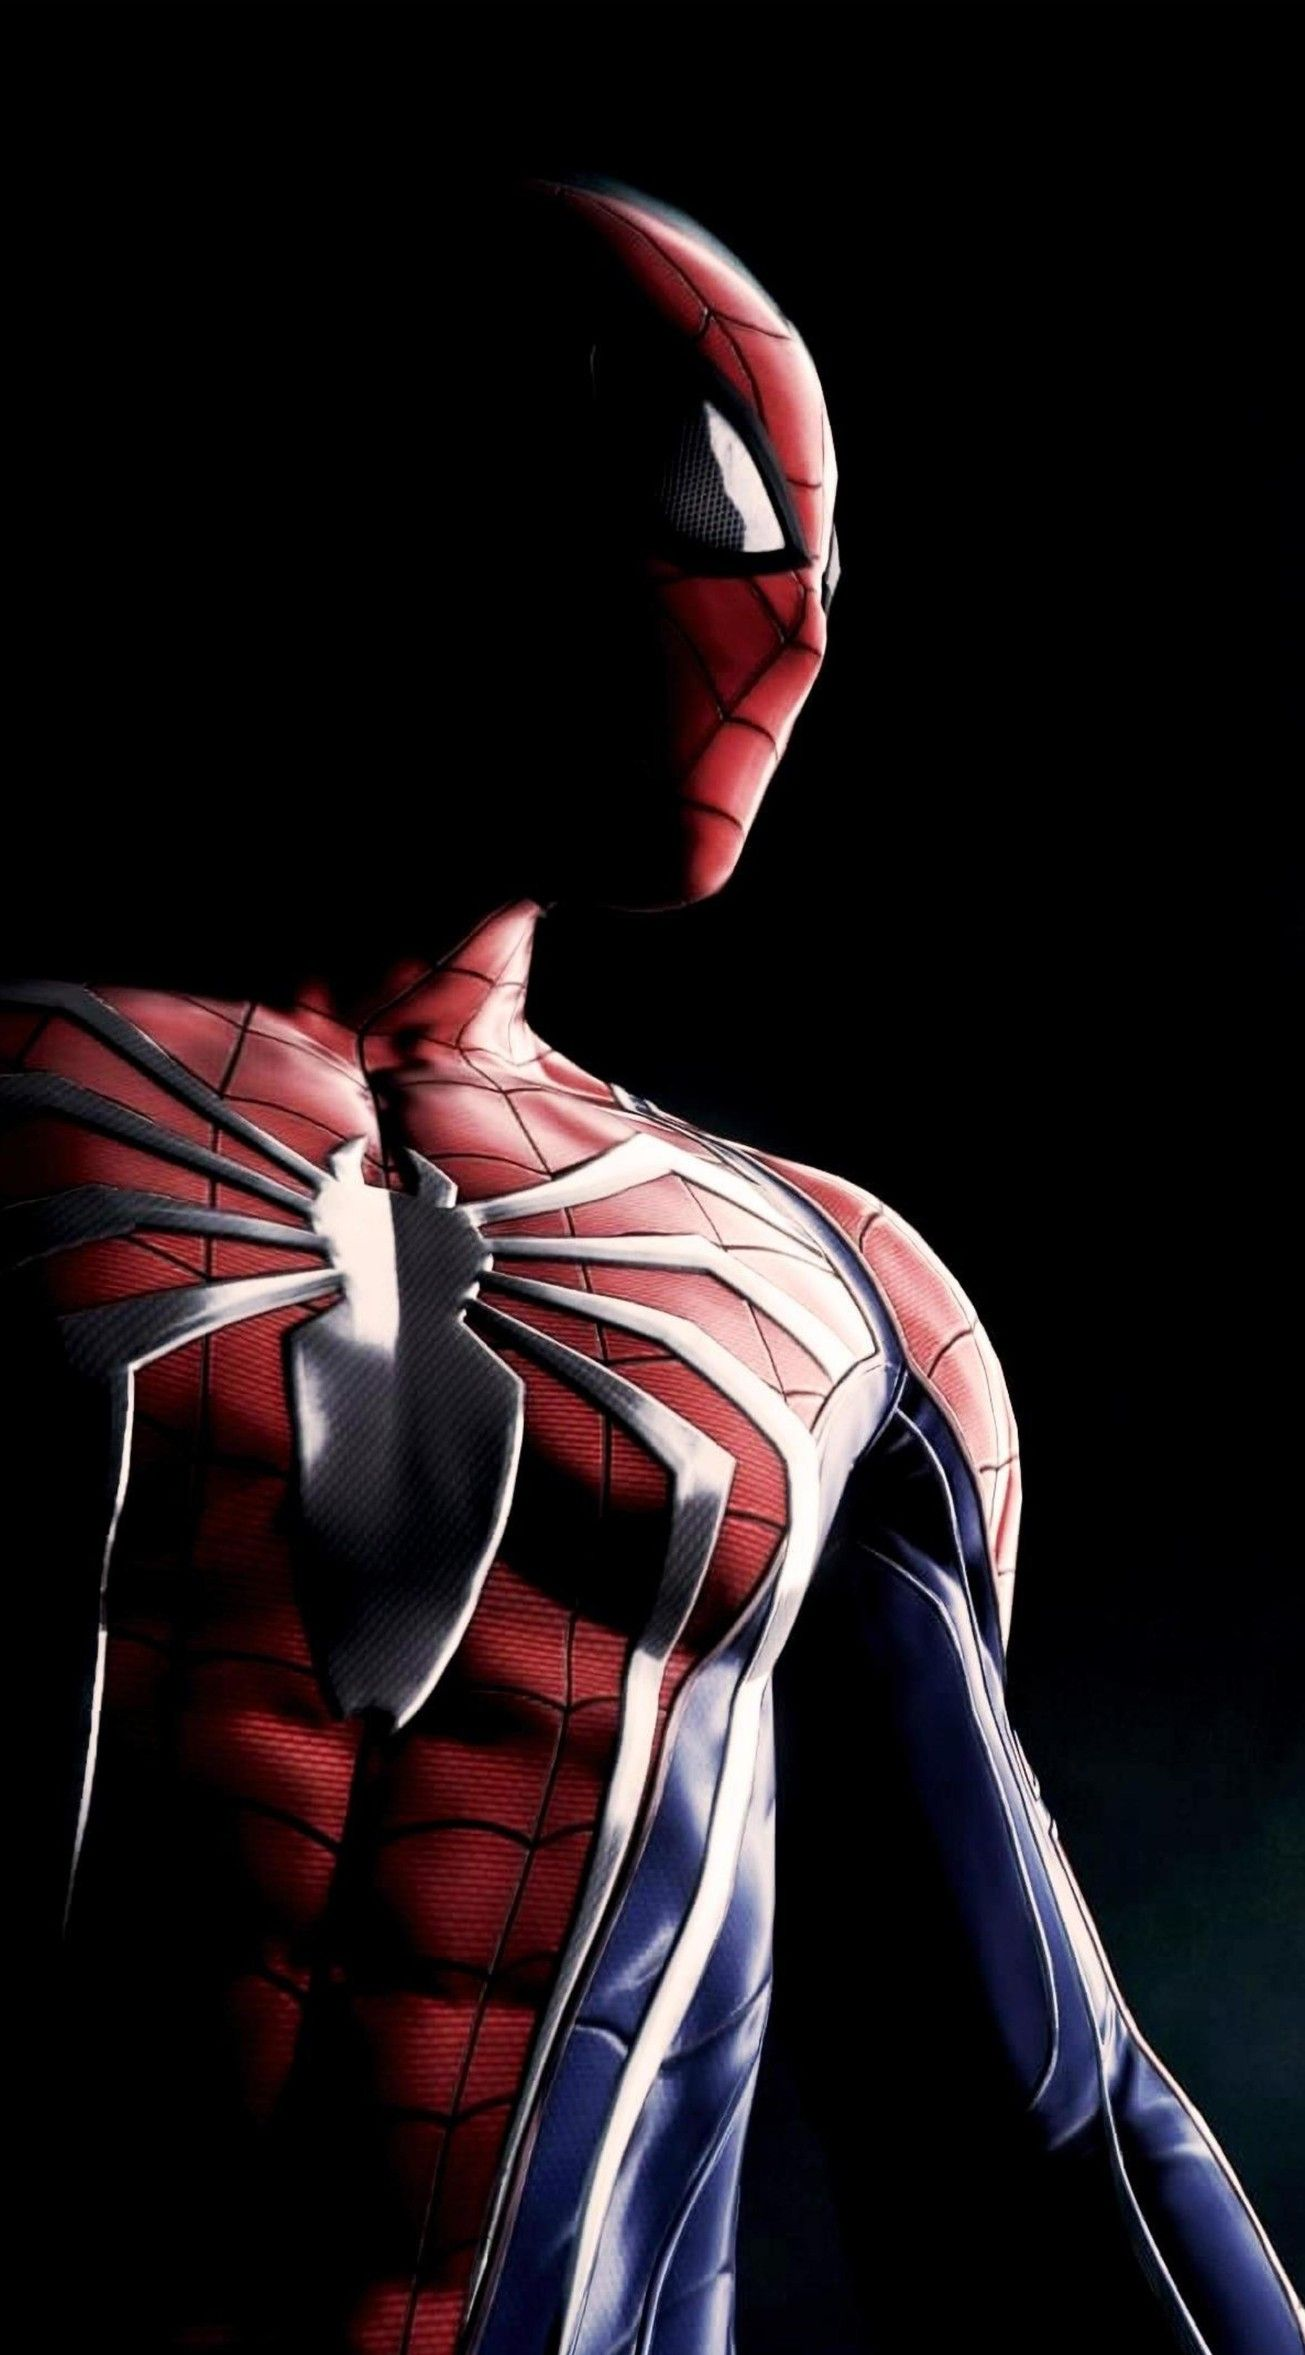 Download Good Marvel Background for iPhone Today